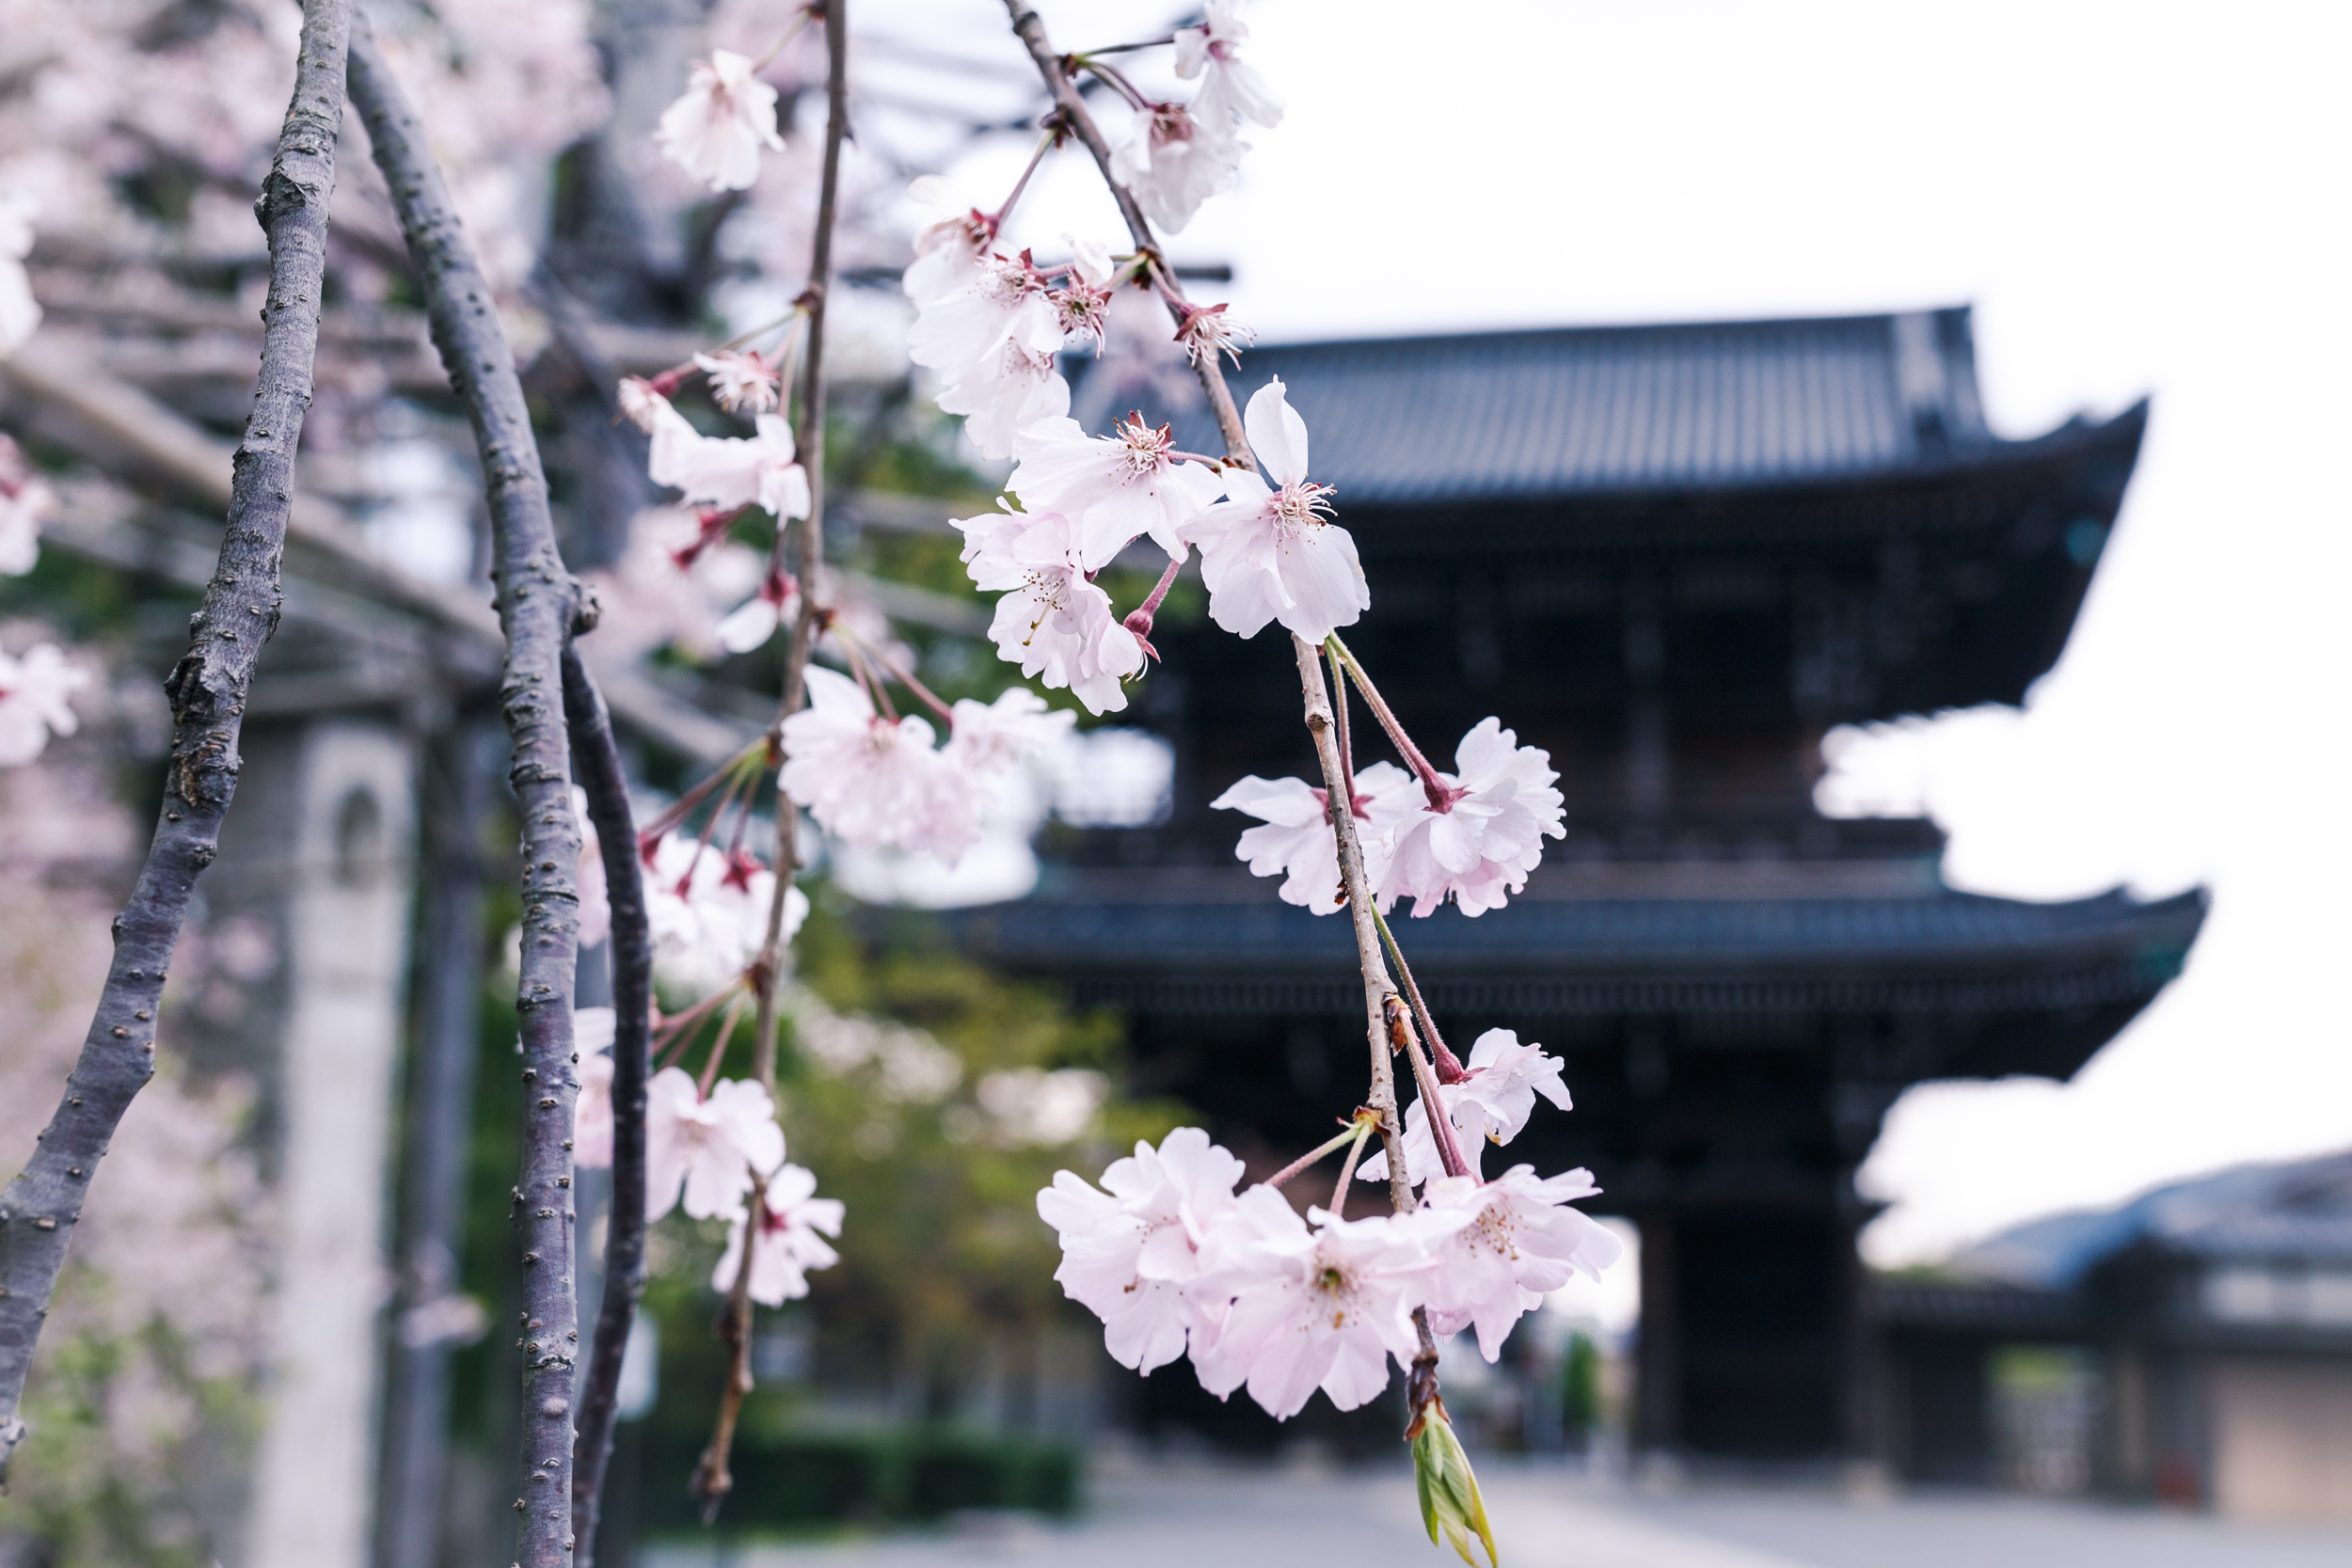 Cherry blossoms at the Seiryo-ji temple in Saga.